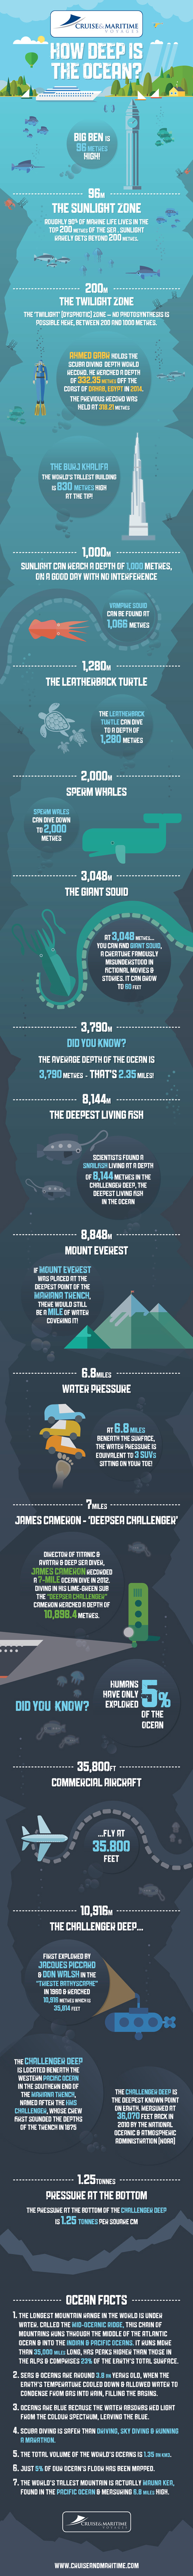 How Deep is the Ocean by Cruise & Maritime Voyages